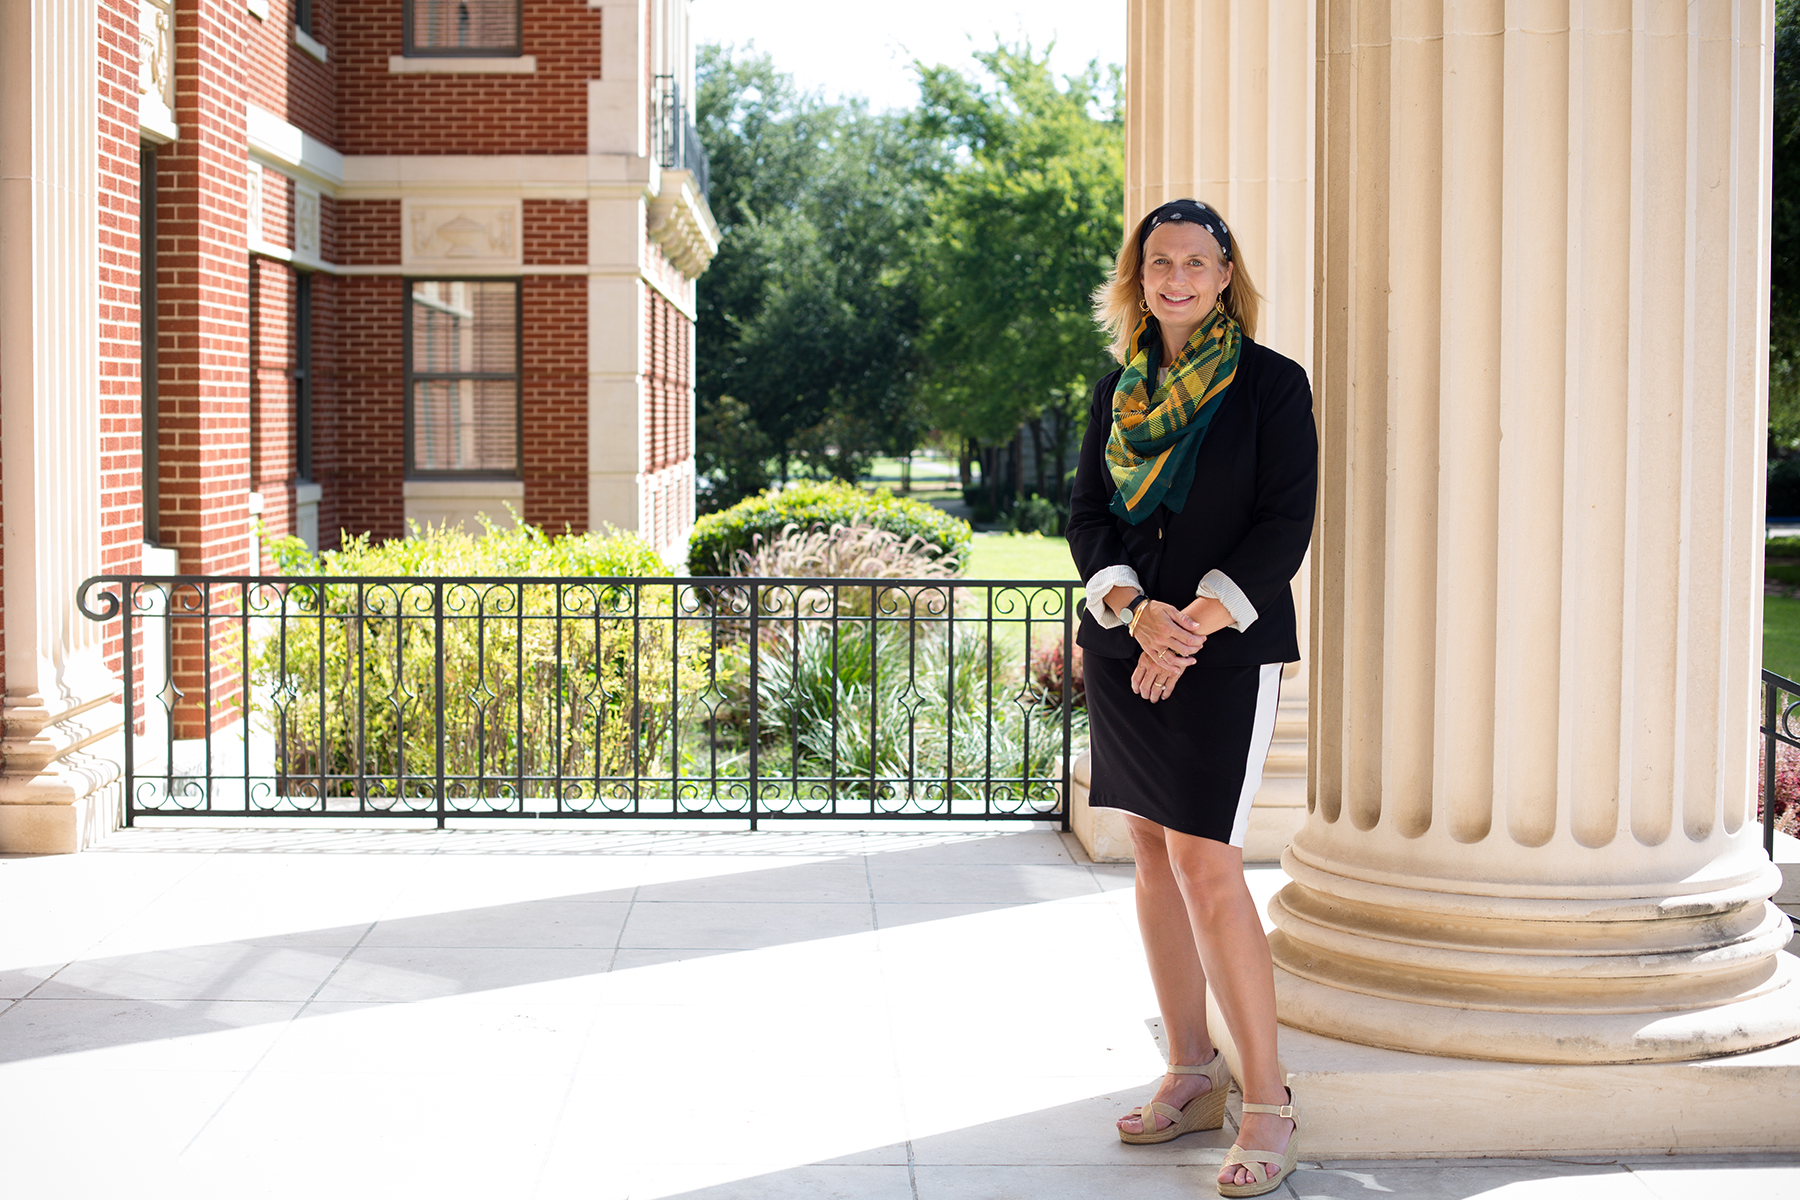 baylor honors thesis syllabus An introduction to and analysis of the culture child and family studies students will examine best practices when working with families and children from diverse backgrounds and needs.